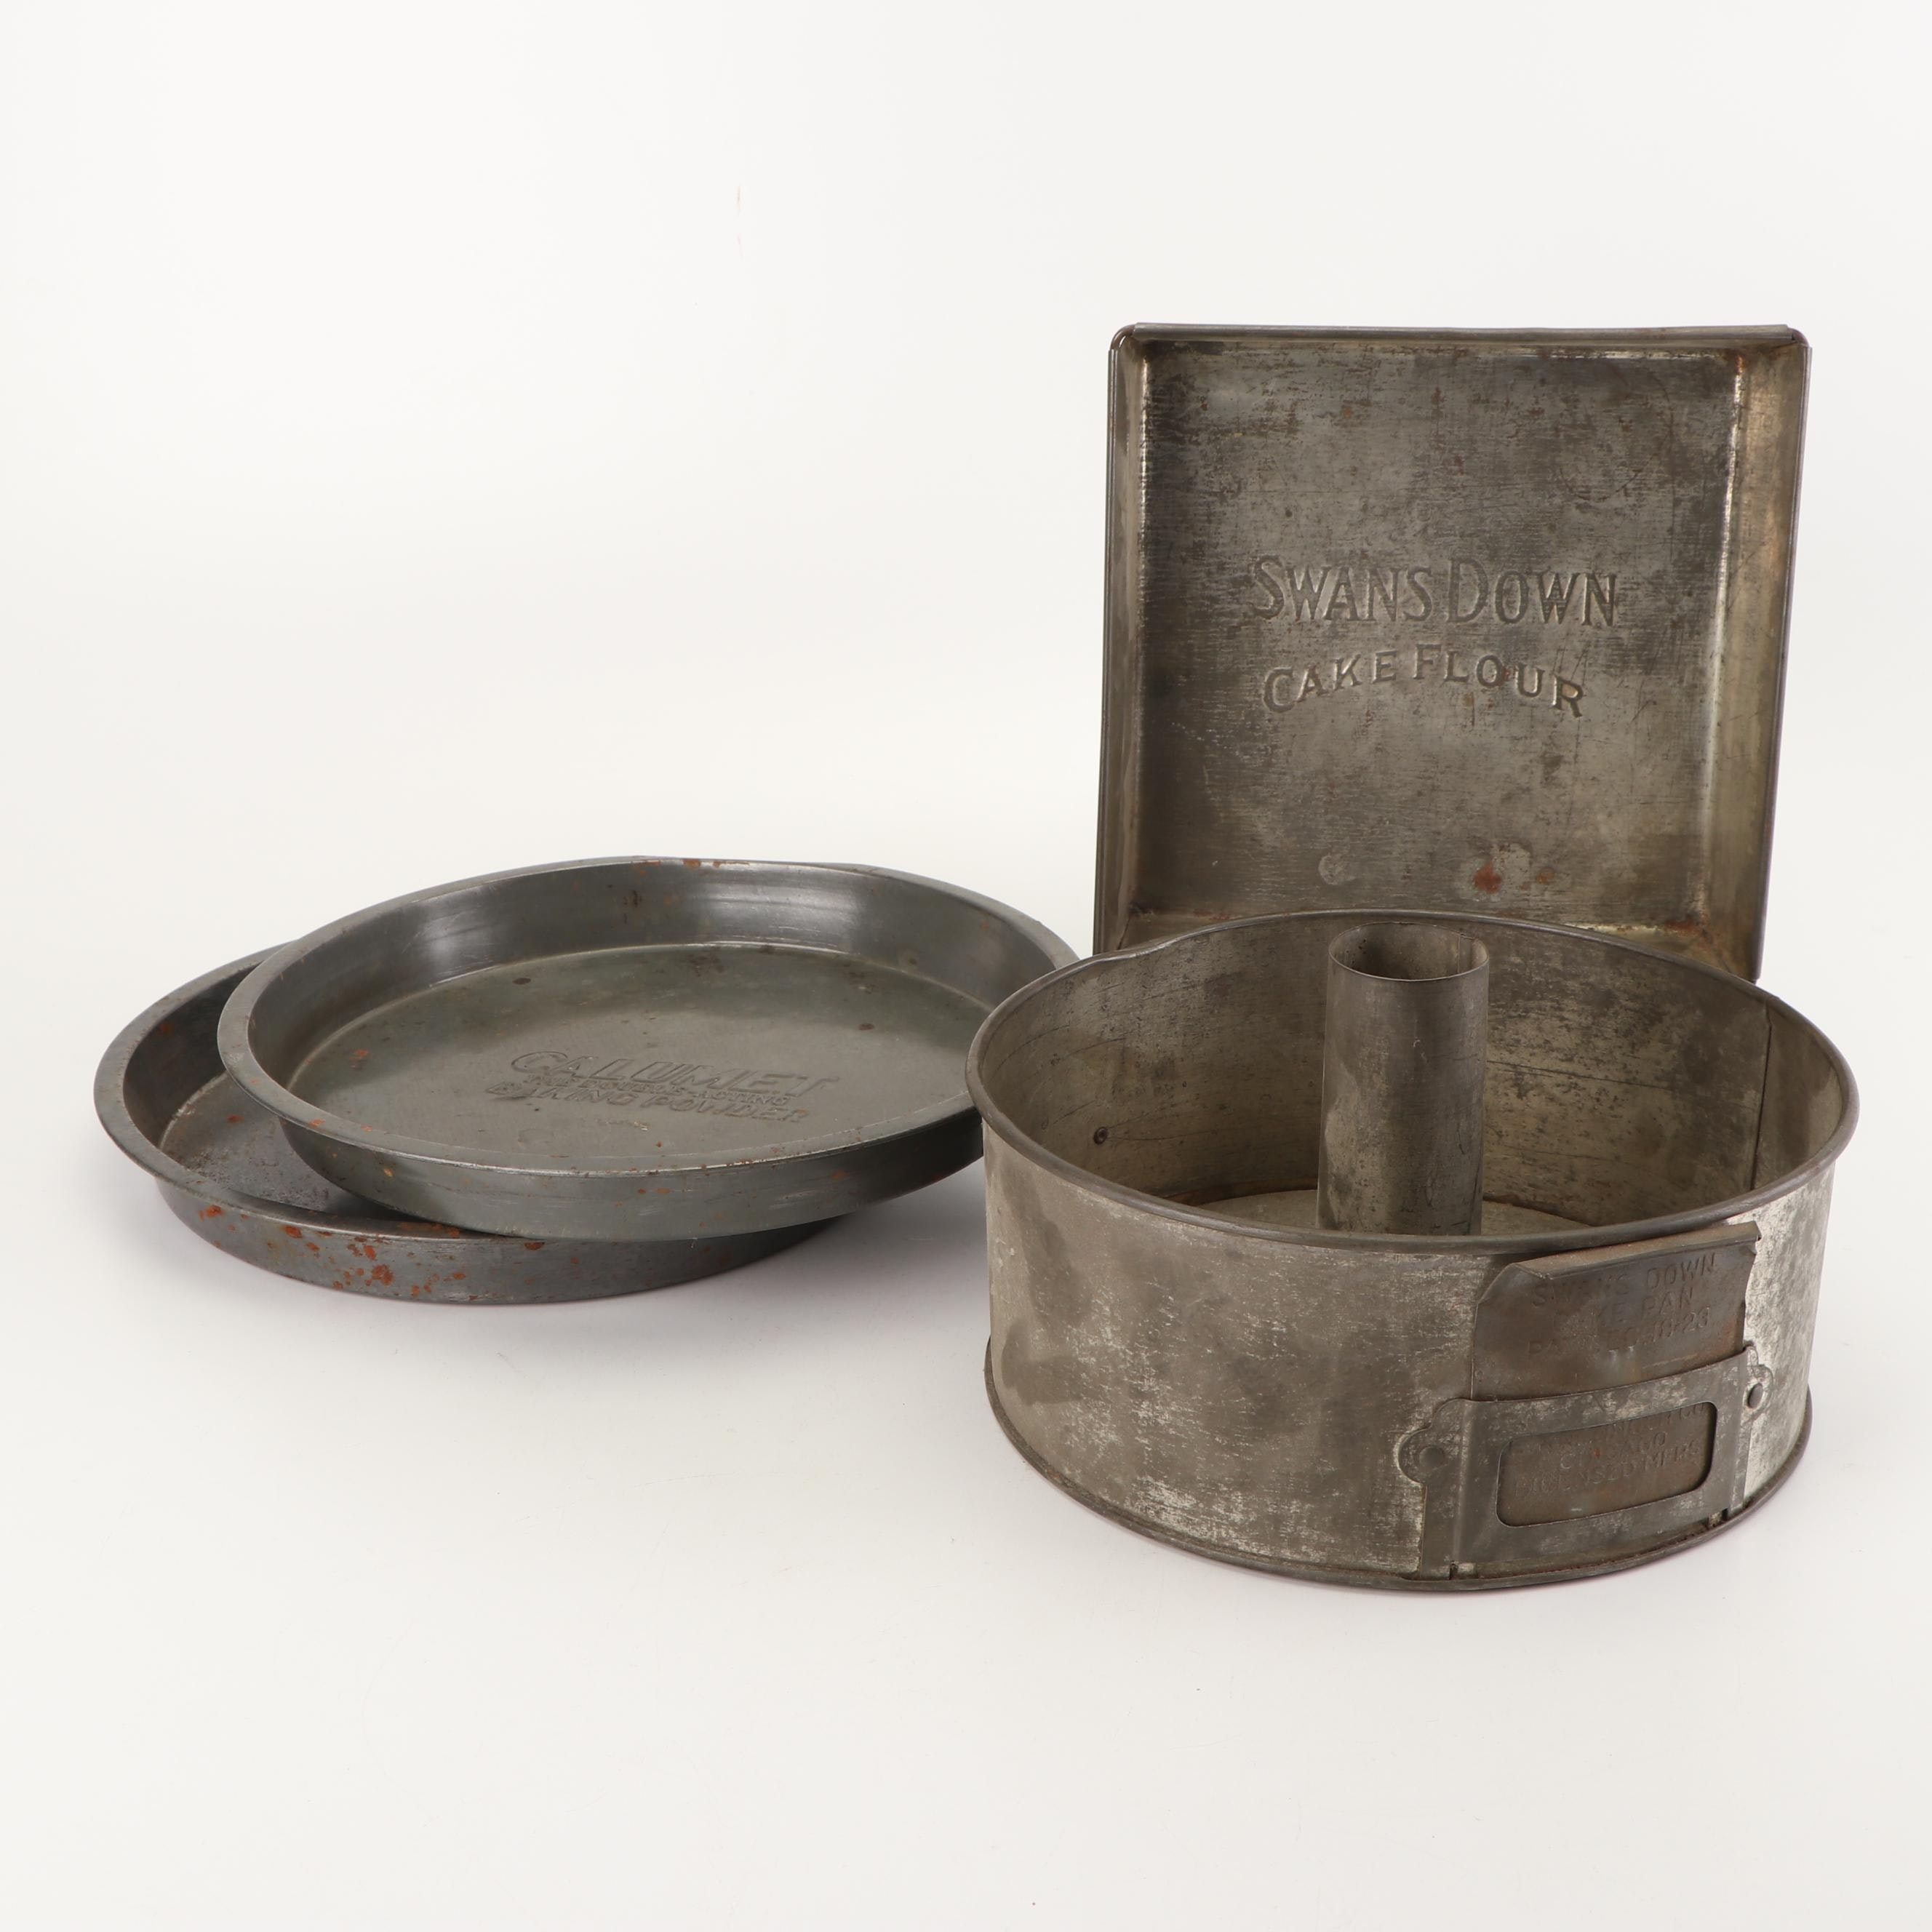 Swans Down and Calumet Metal Cake and Baking Pans, 1920s